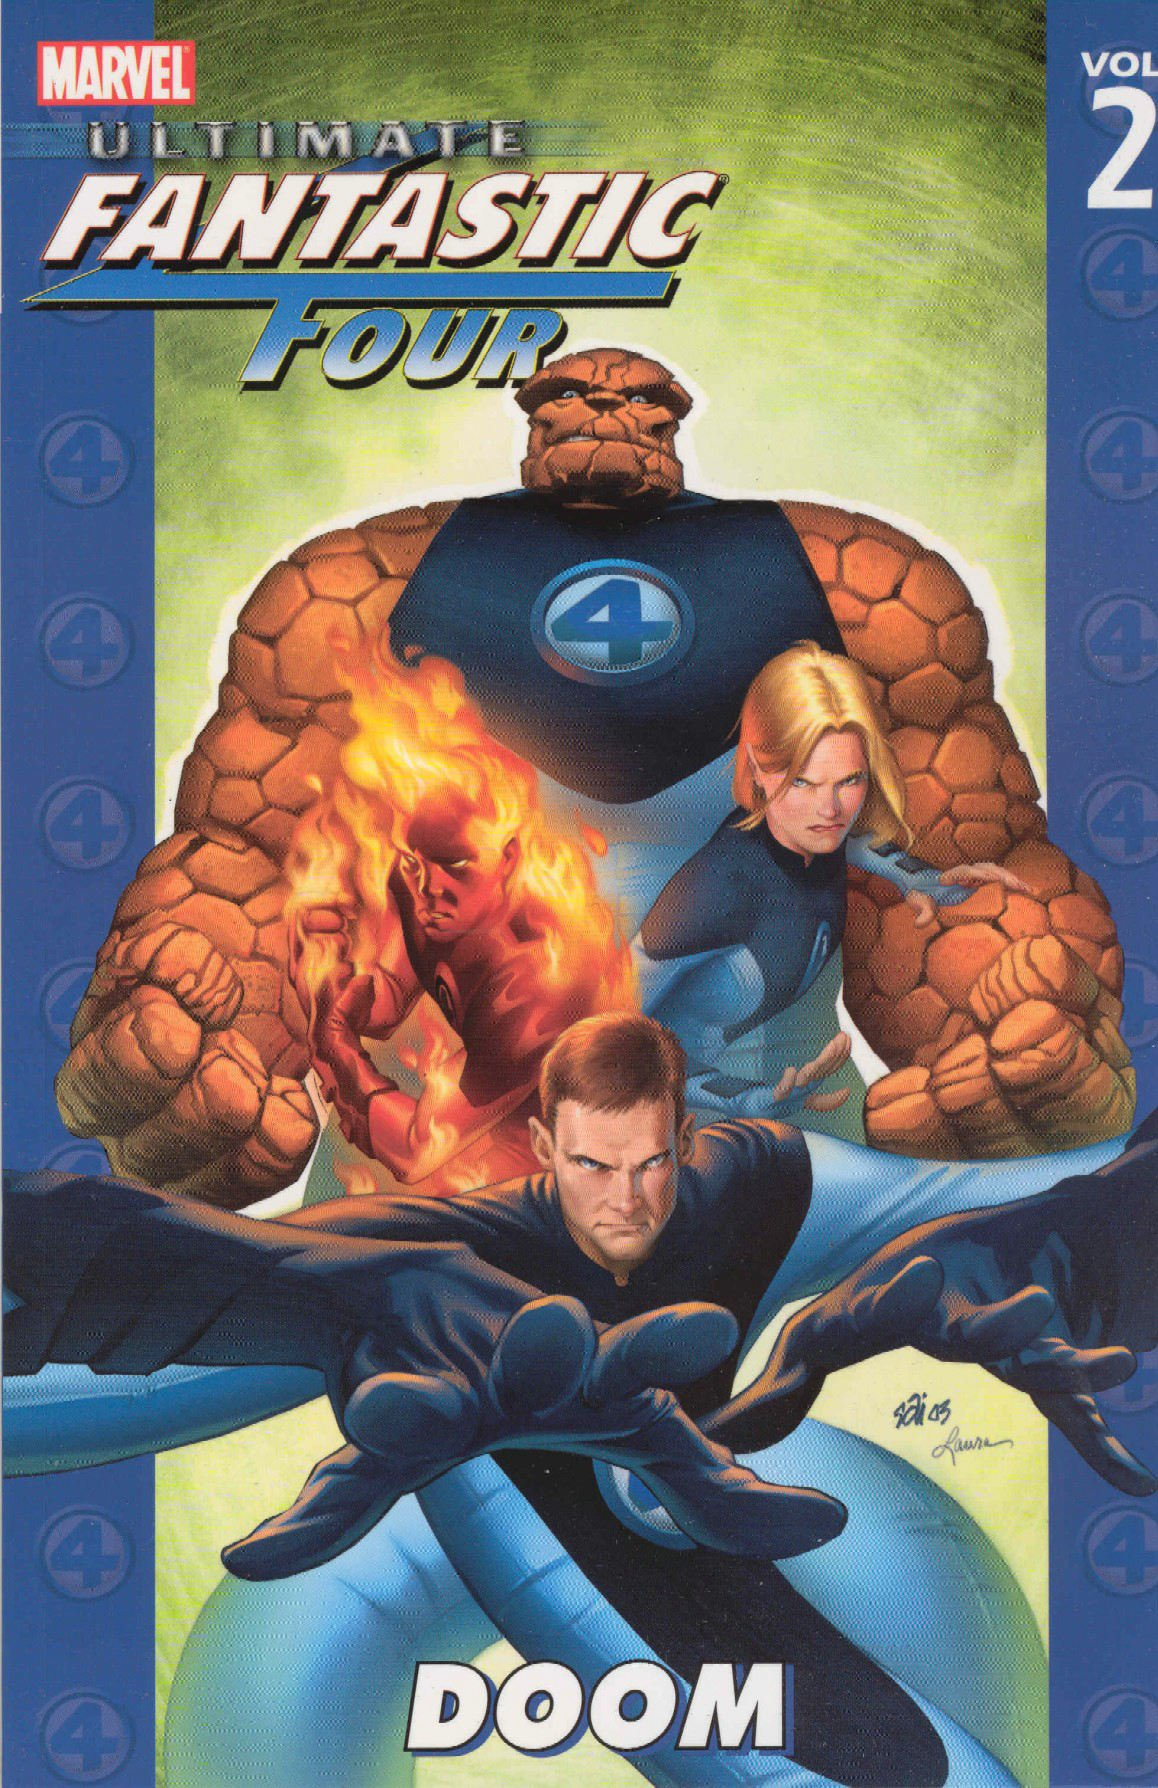 Image result for Ultimate Fantastic Four